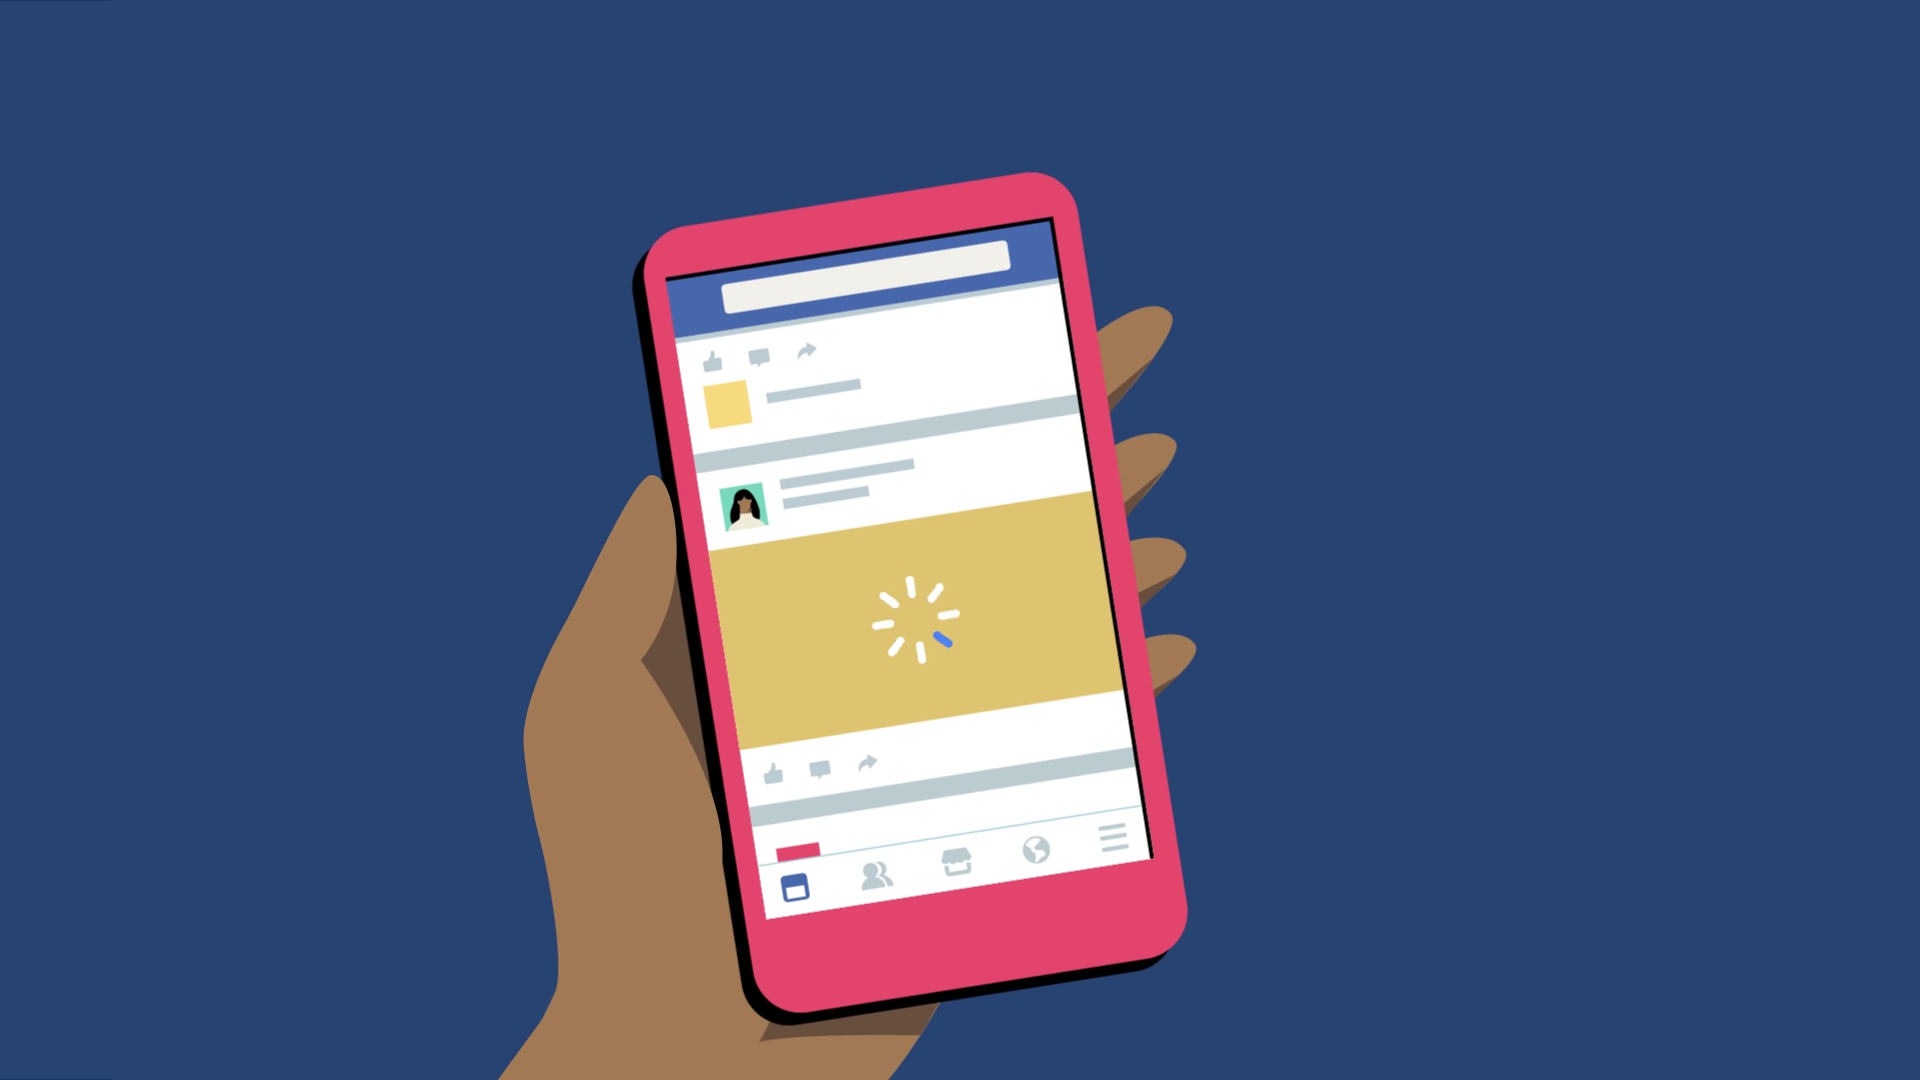 How to keep up with local news following Facebook news feed changes